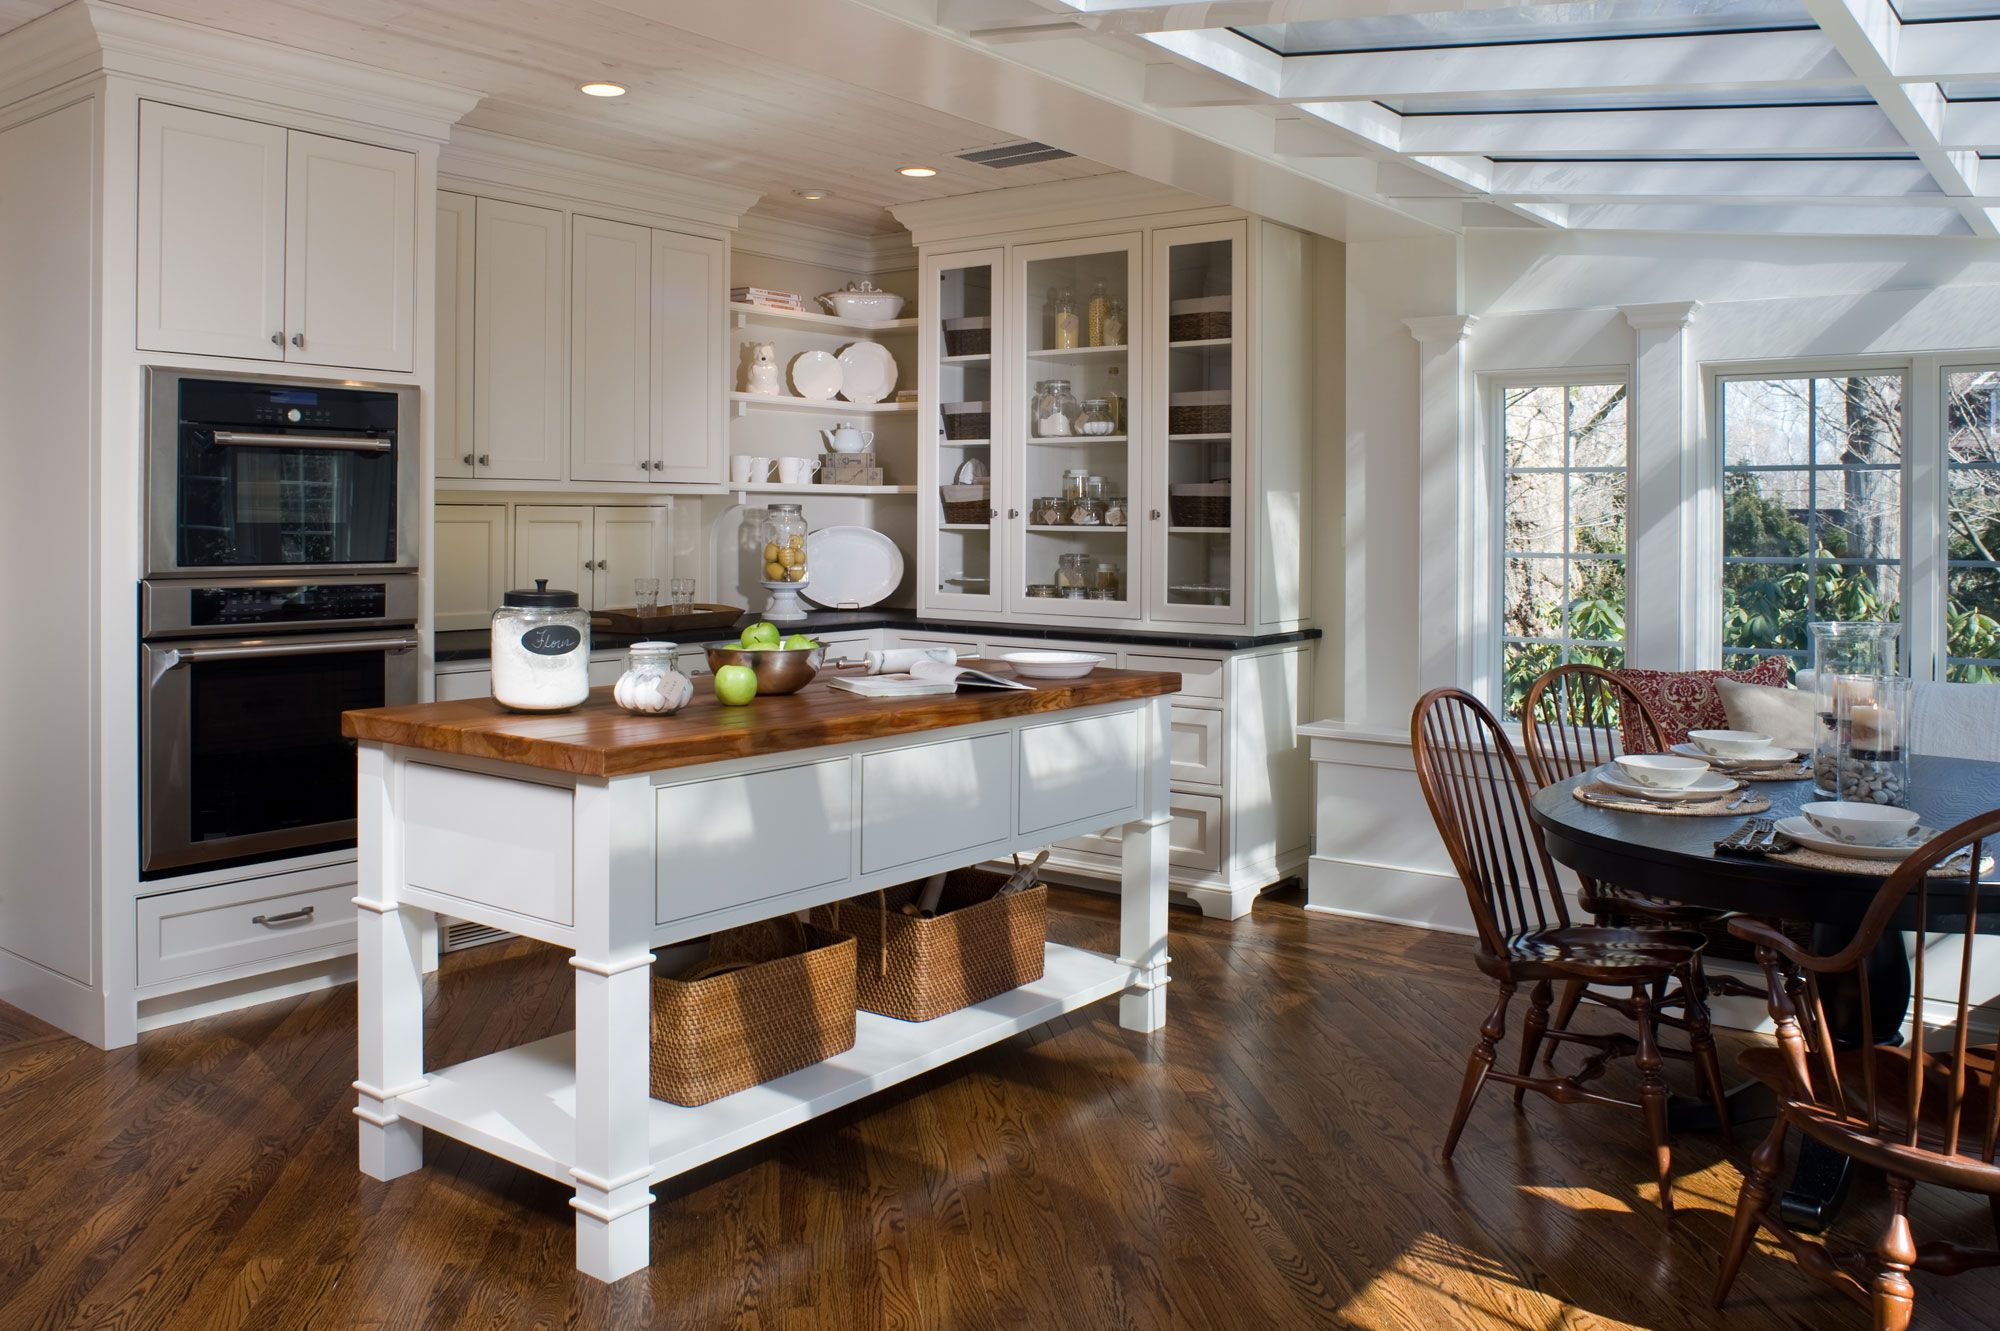 Kitchens by Eileen was rated at the highest level for